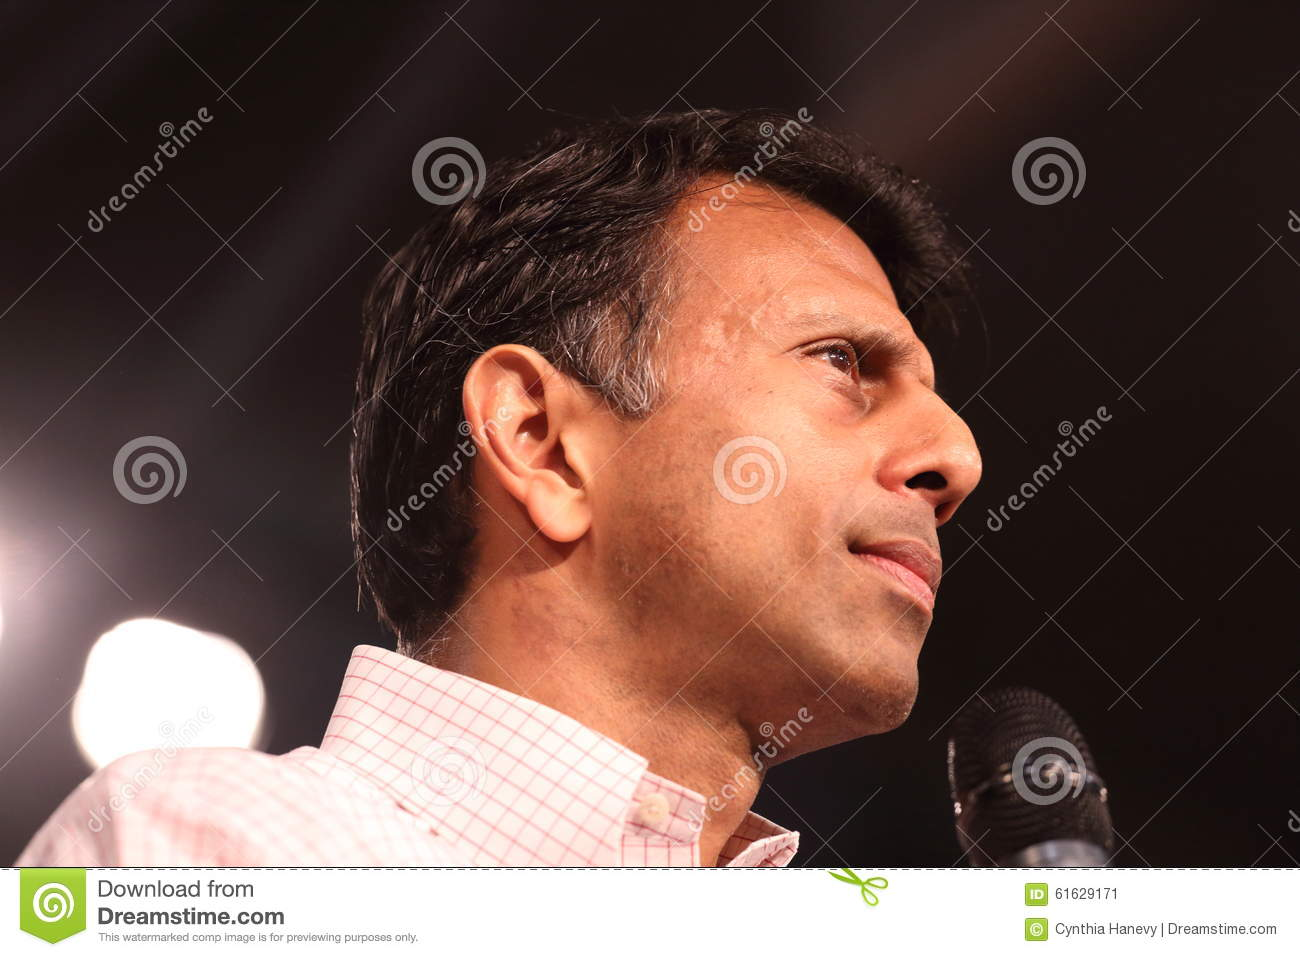 Louisiana Governor Bobby Jindal campaigns